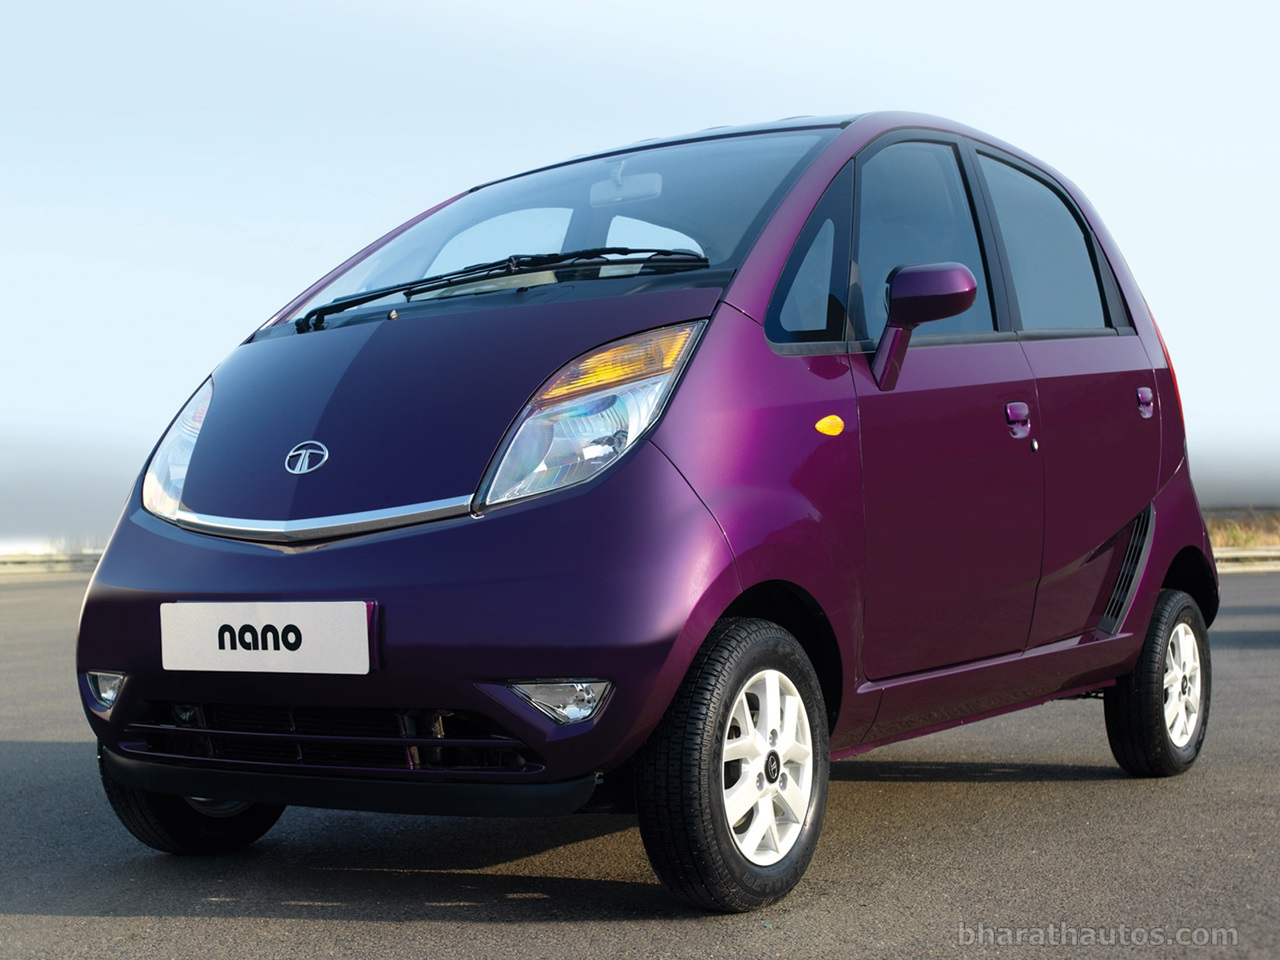 new car launches in january 2014Updated Tata Nano finally gets power steering launch in January2014